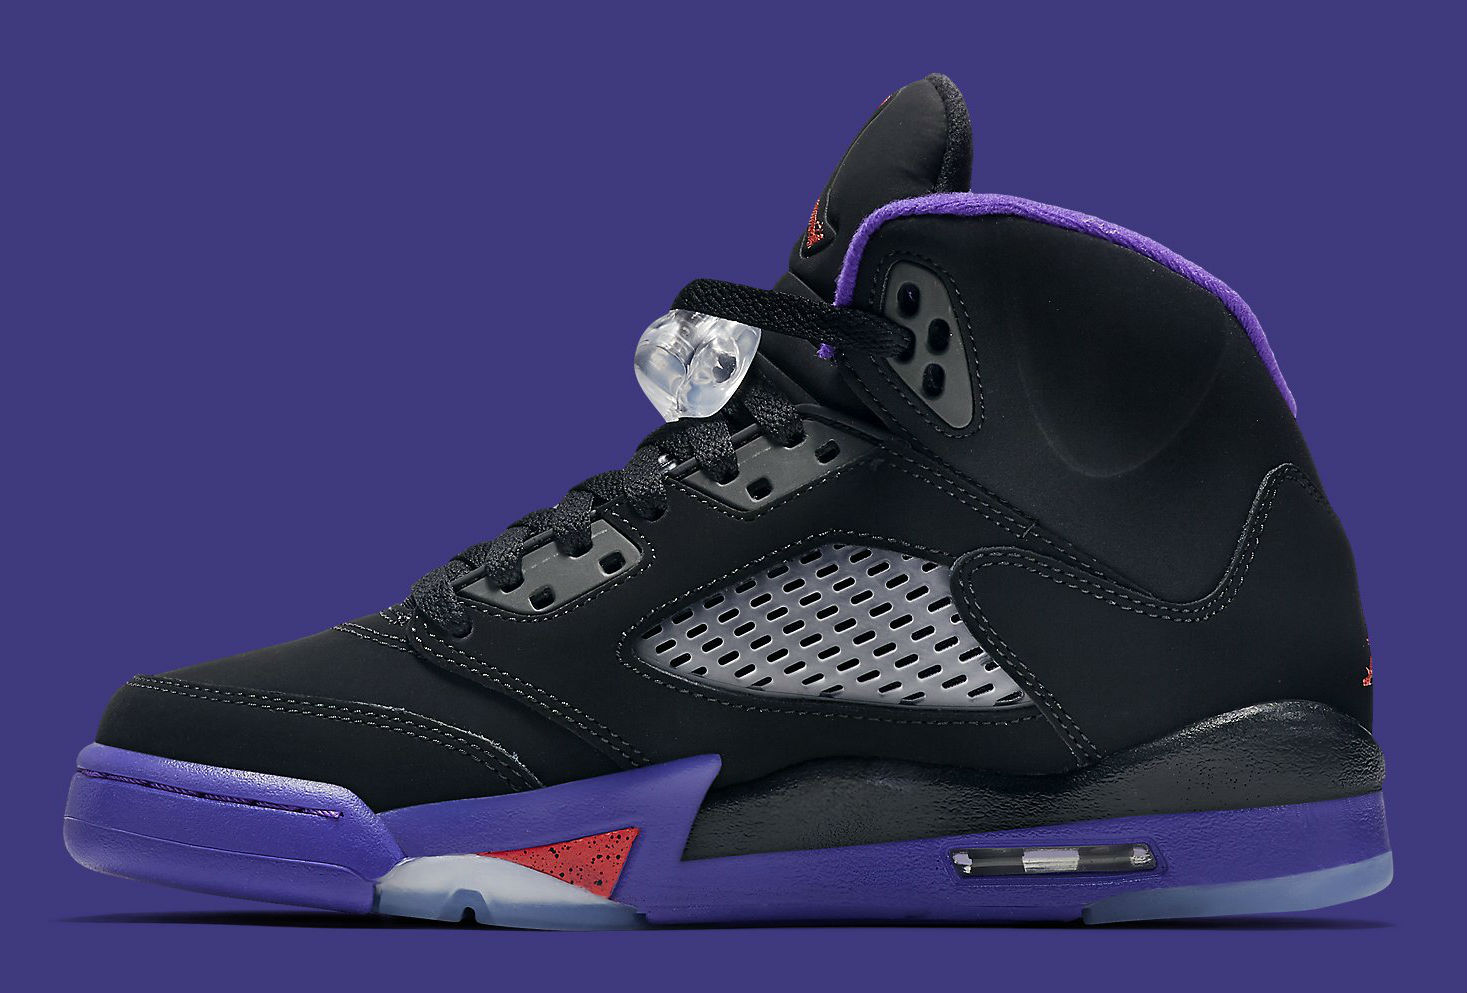 brand new d8f26 a7418 Air Jordan 5 Black Ember Glow Fierce Purple | Sole Collector